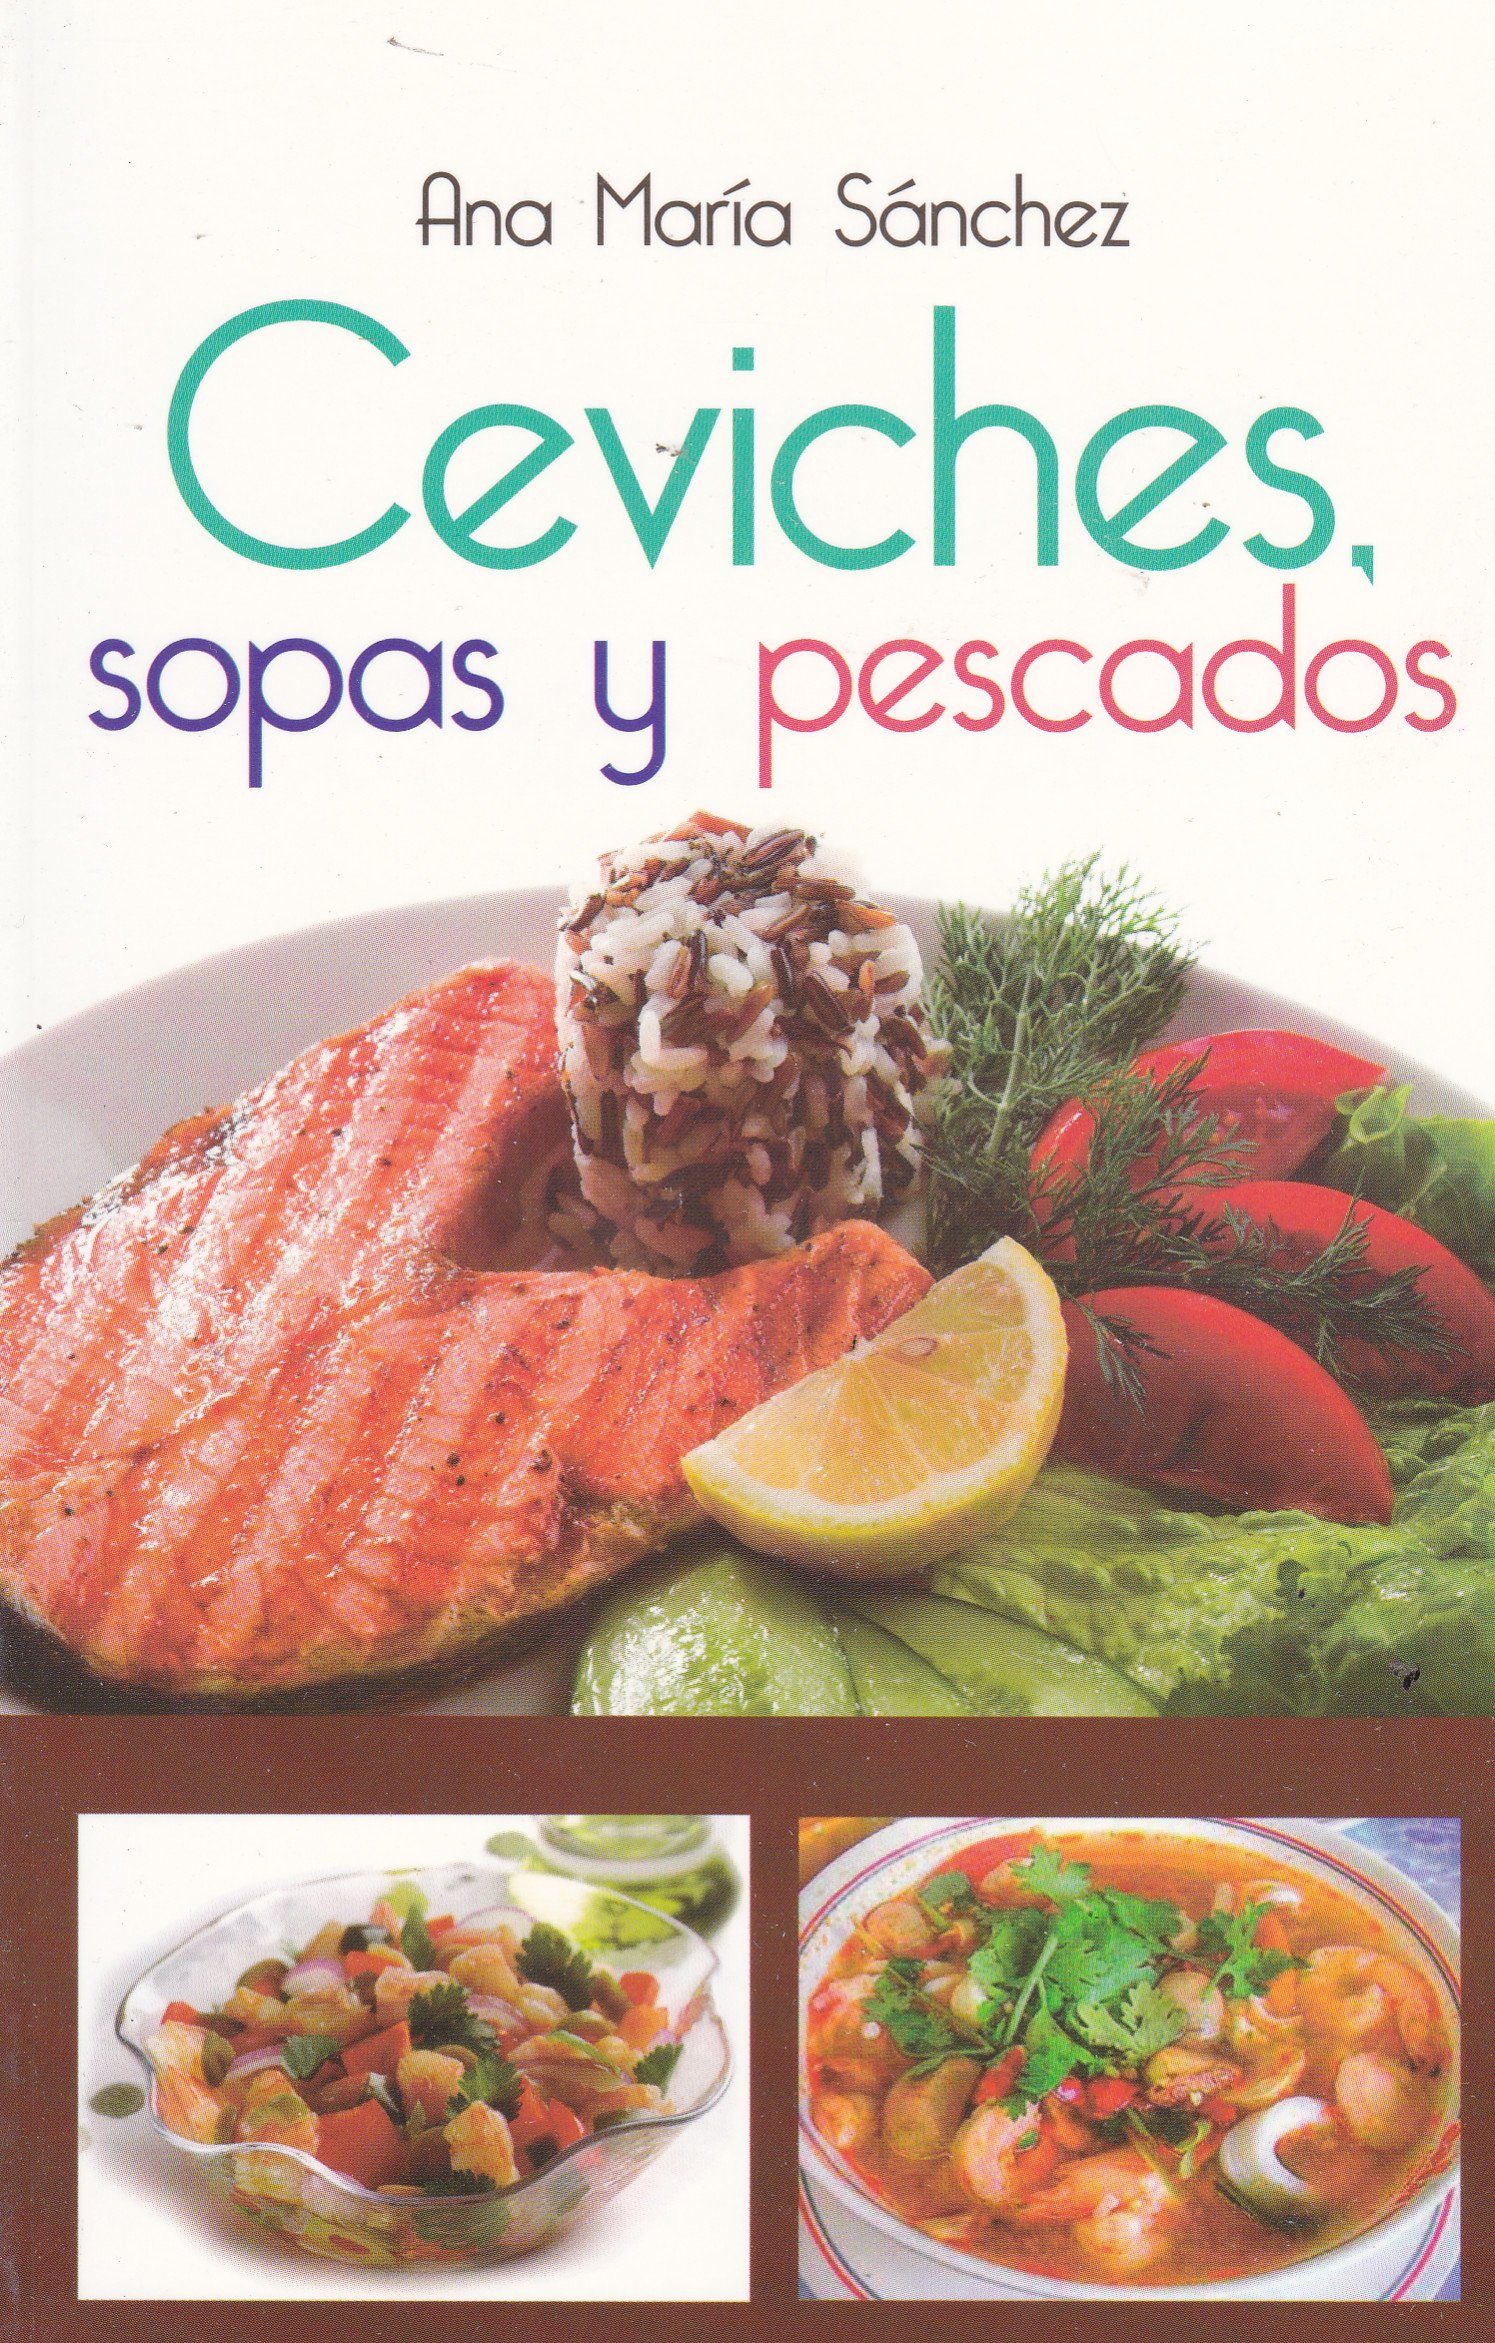 Ceviches, sopas y pescados (Spanish Edition) (Spanish) Paperback – January 1, 2013